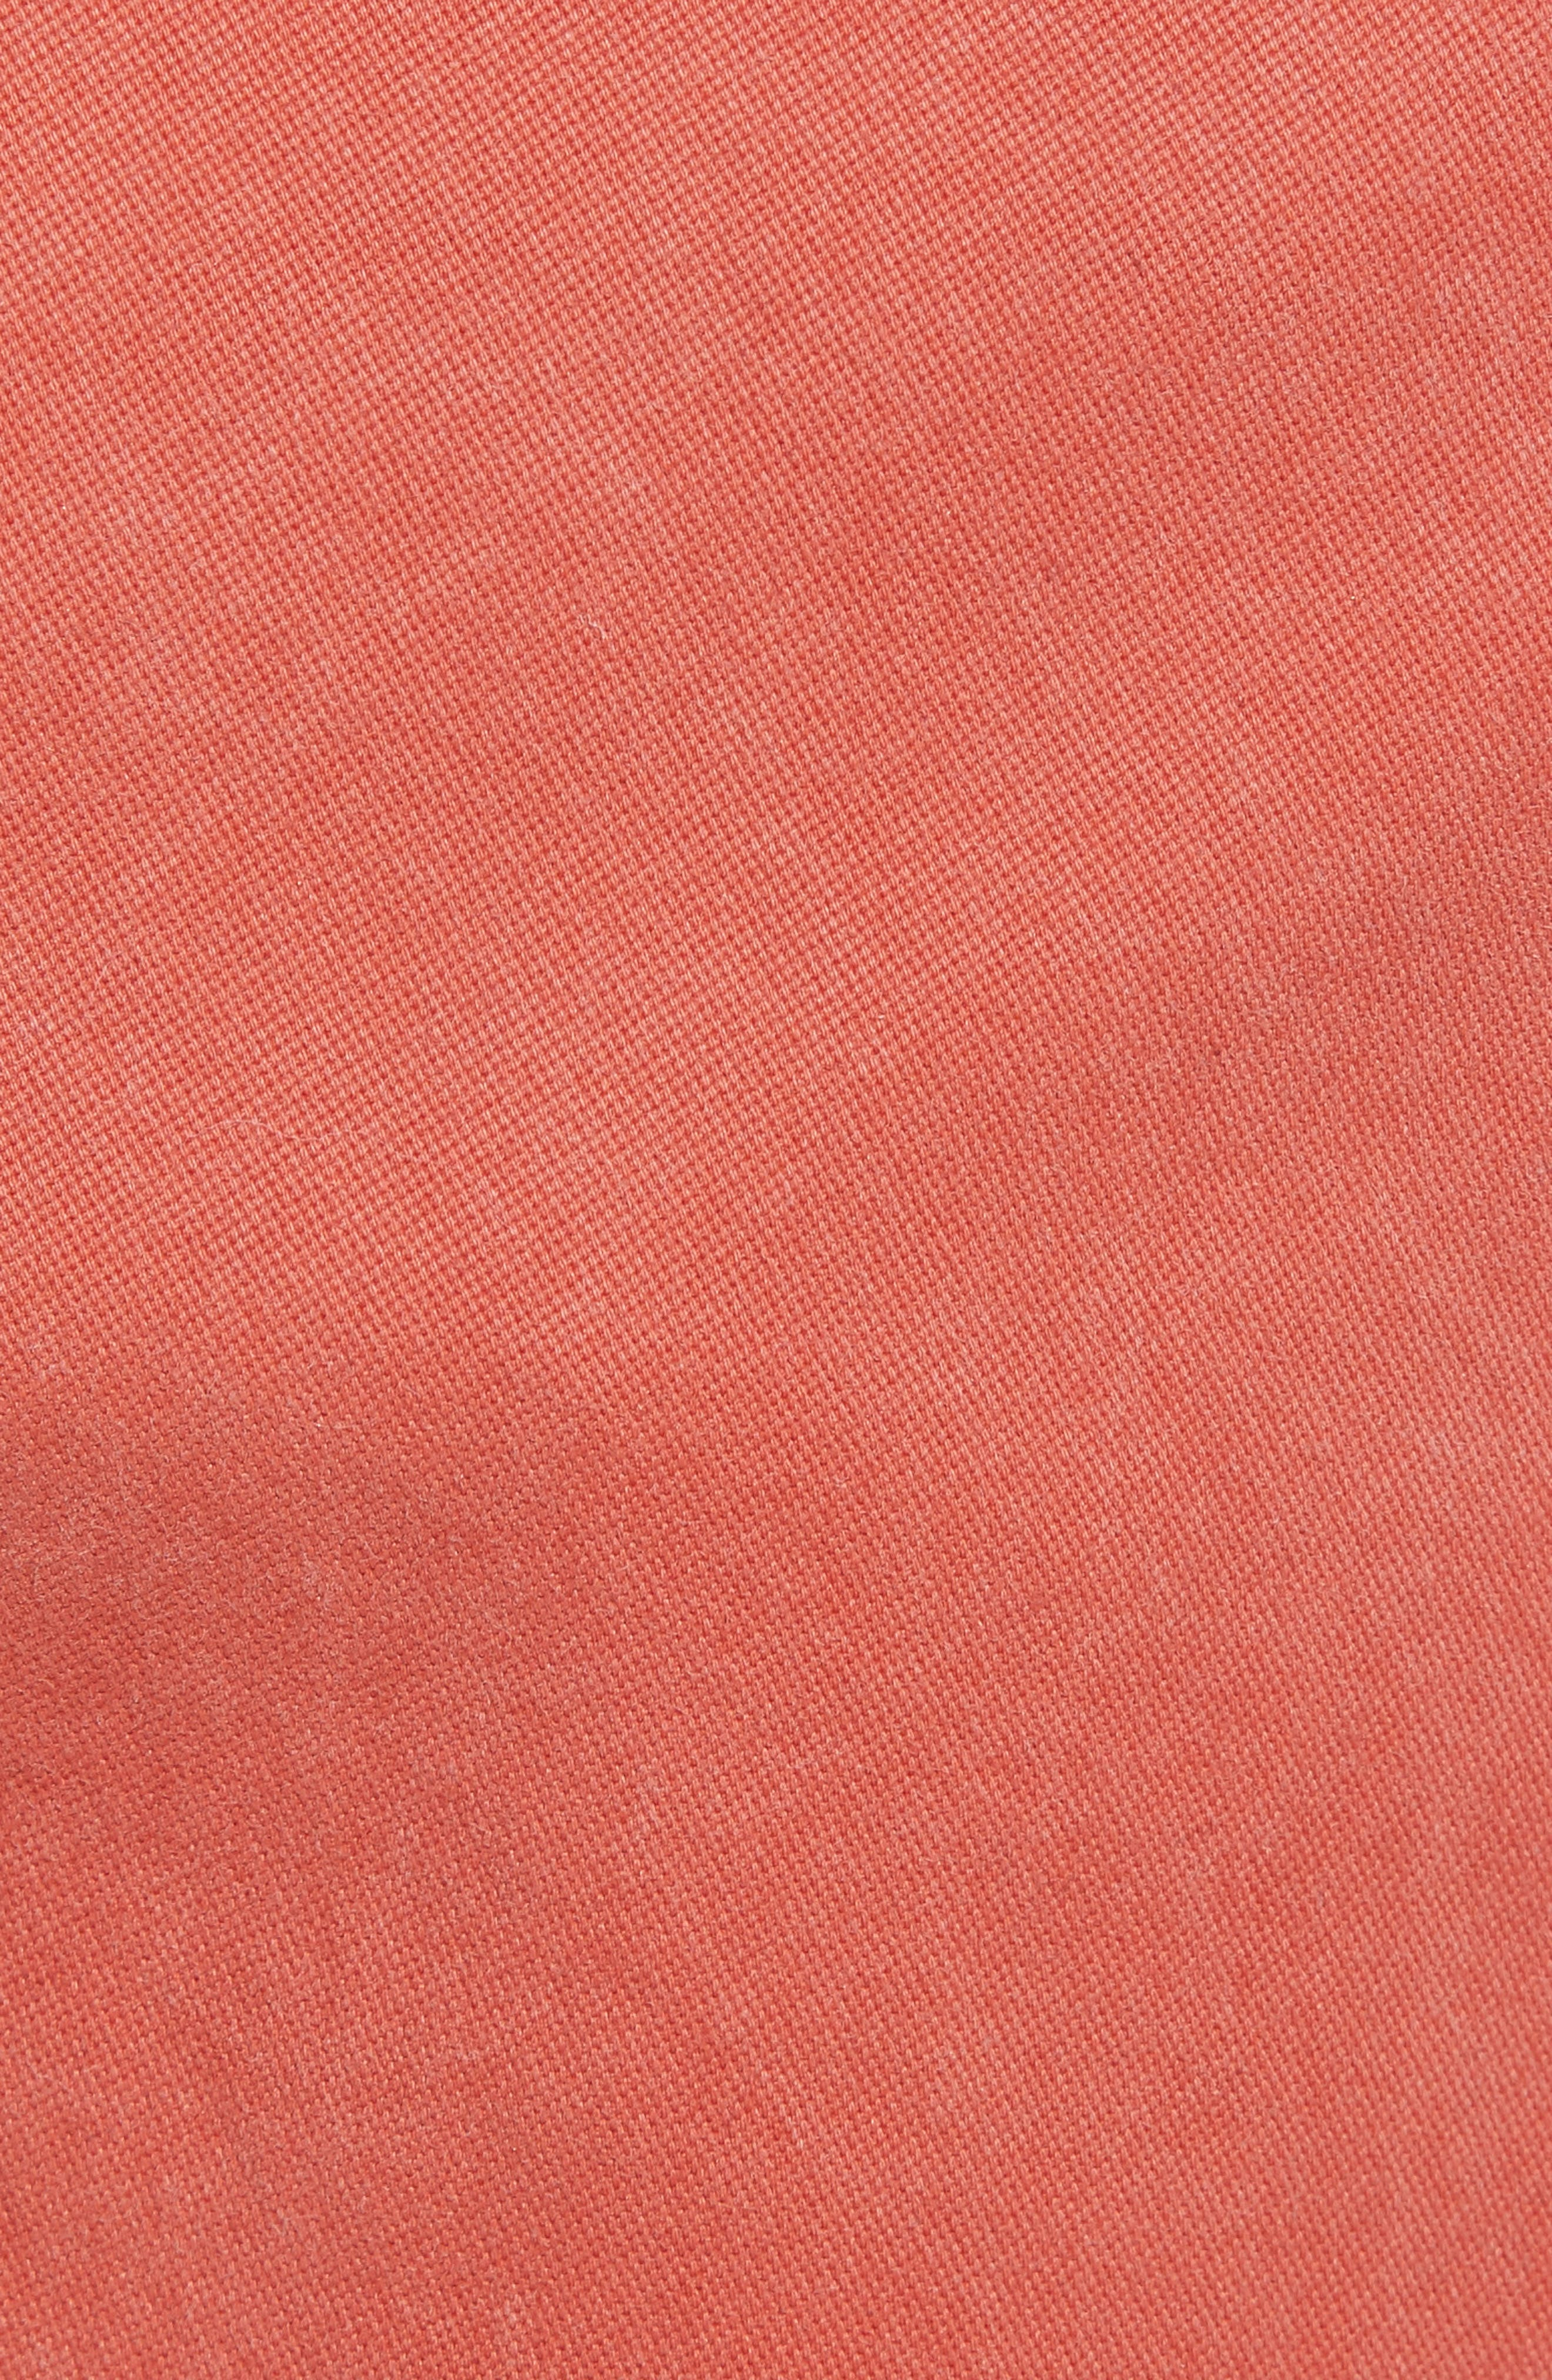 Glenburn Shorts,                             Alternate thumbnail 6, color,                             Red Ochre